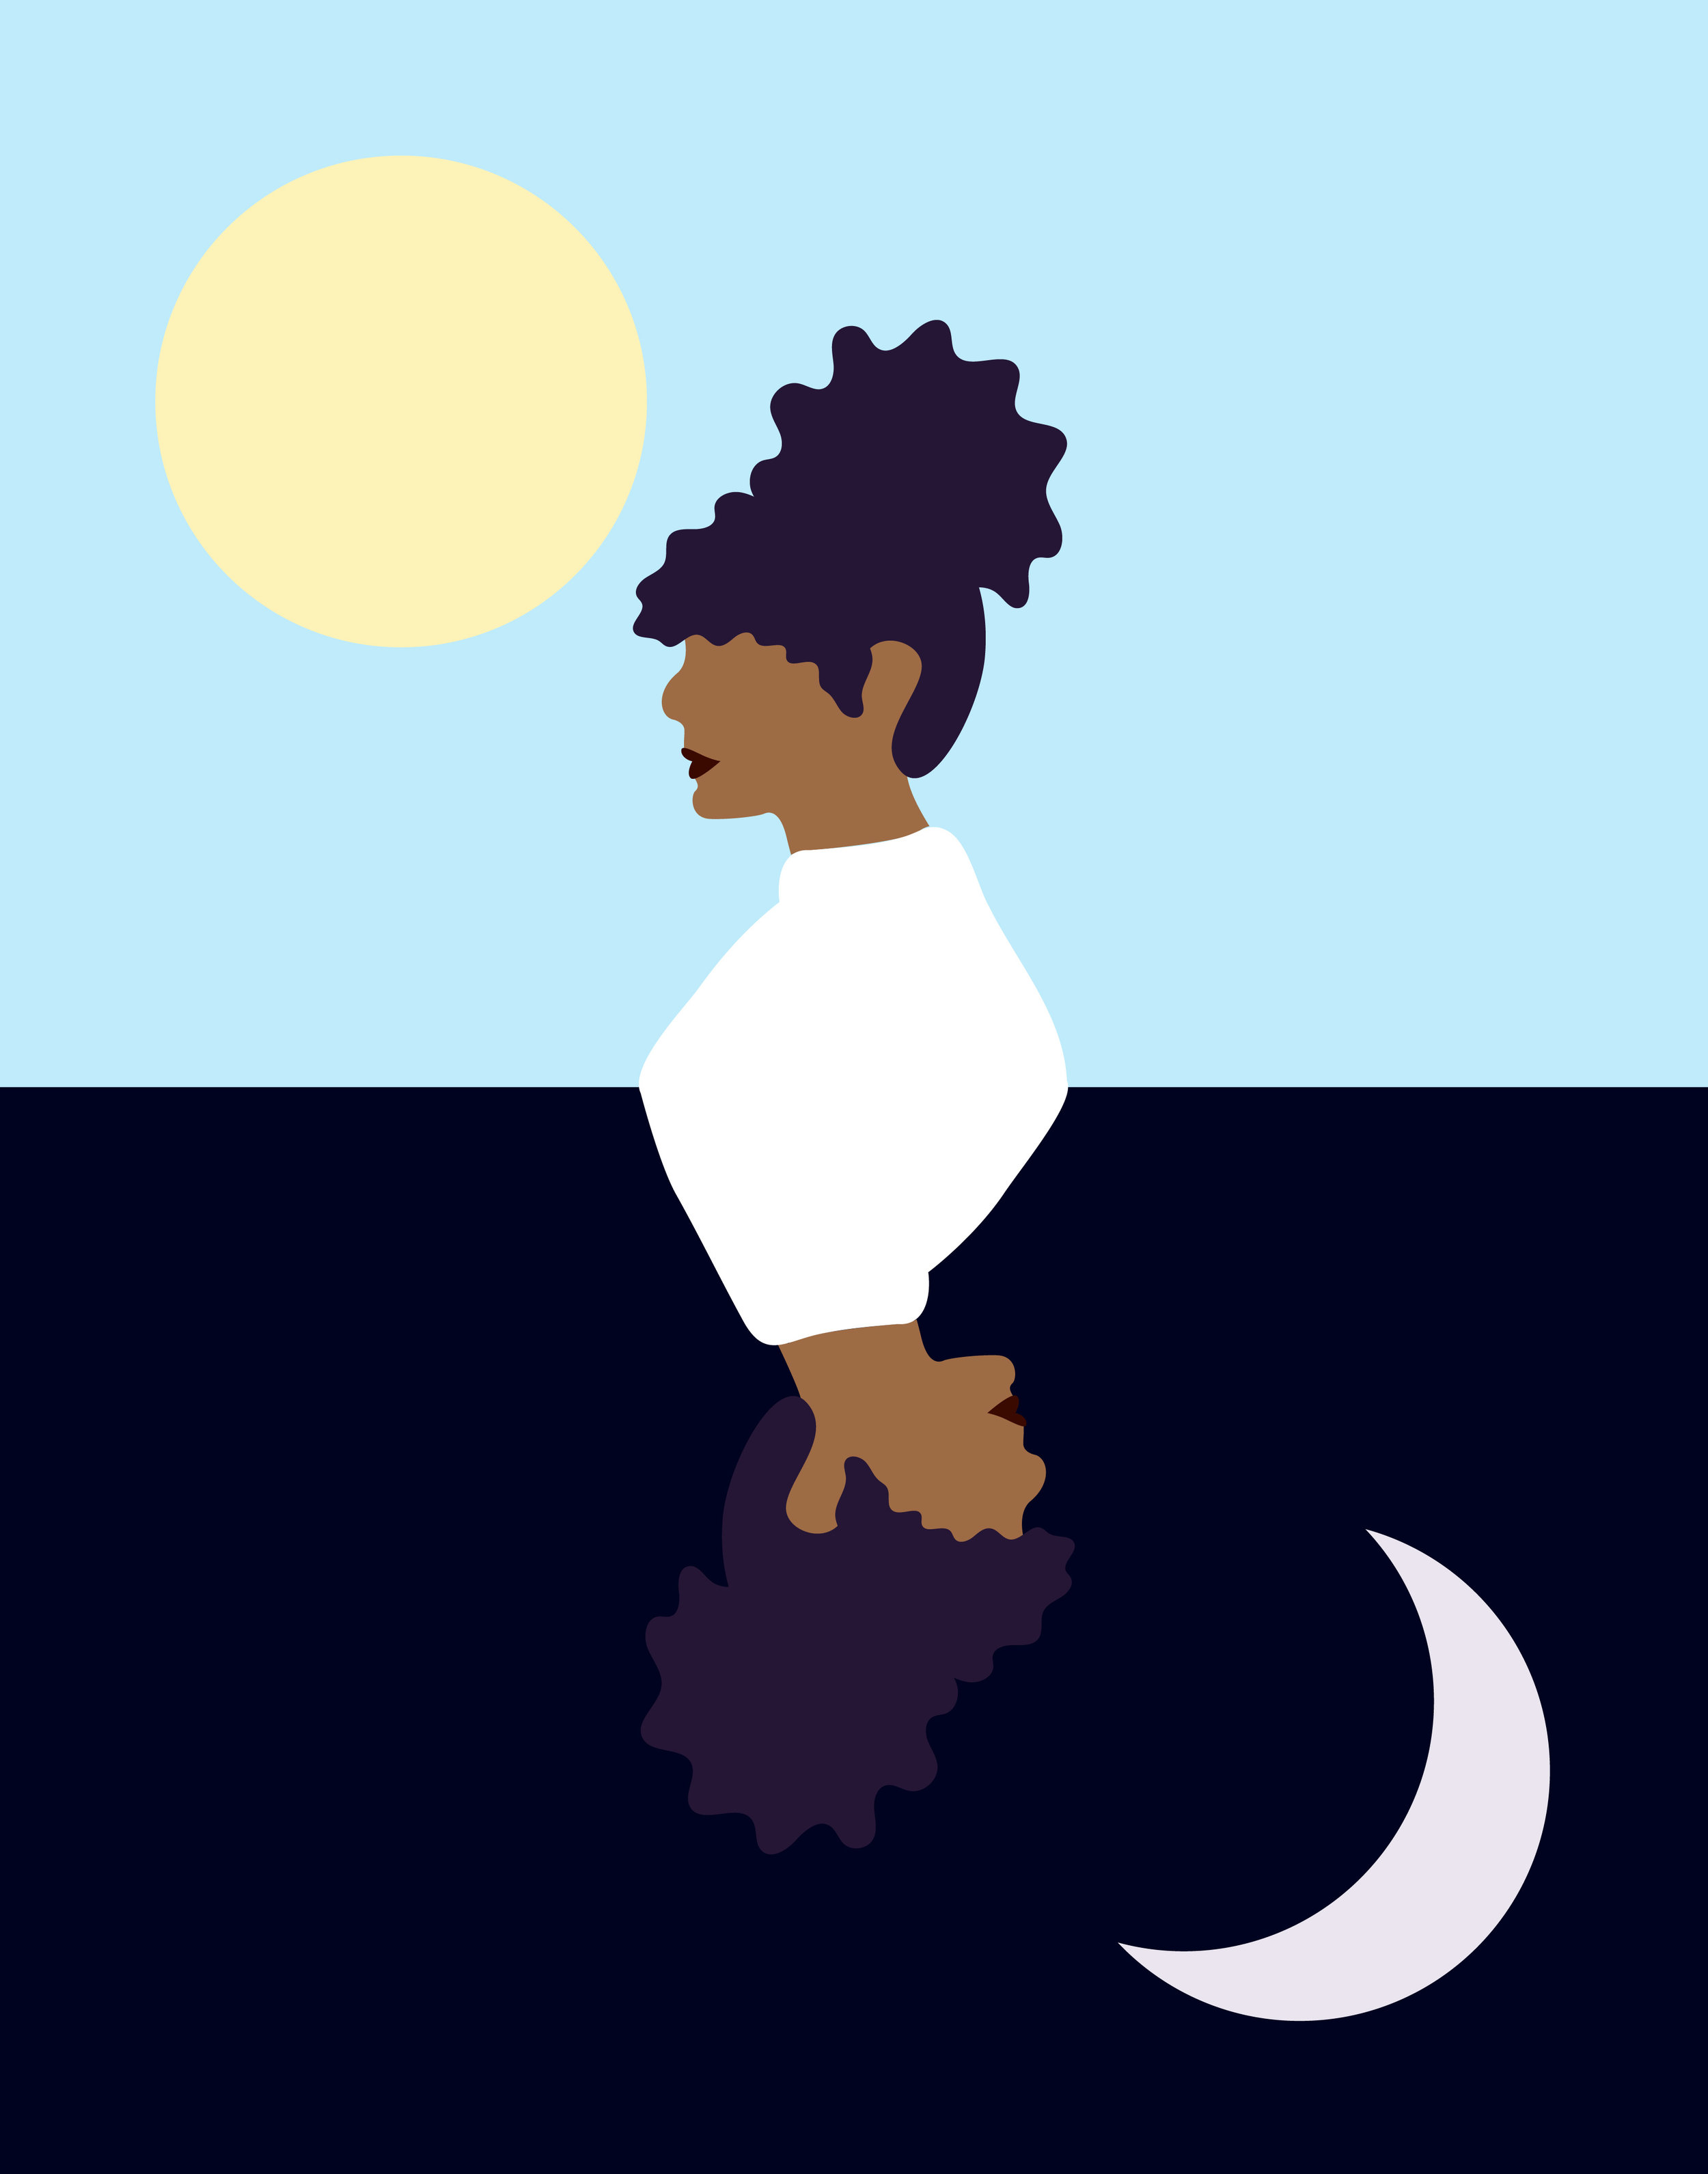 Two characters juxtaposed over a light blue background with a sun on top and a dark blue background with a crescent moon below it.